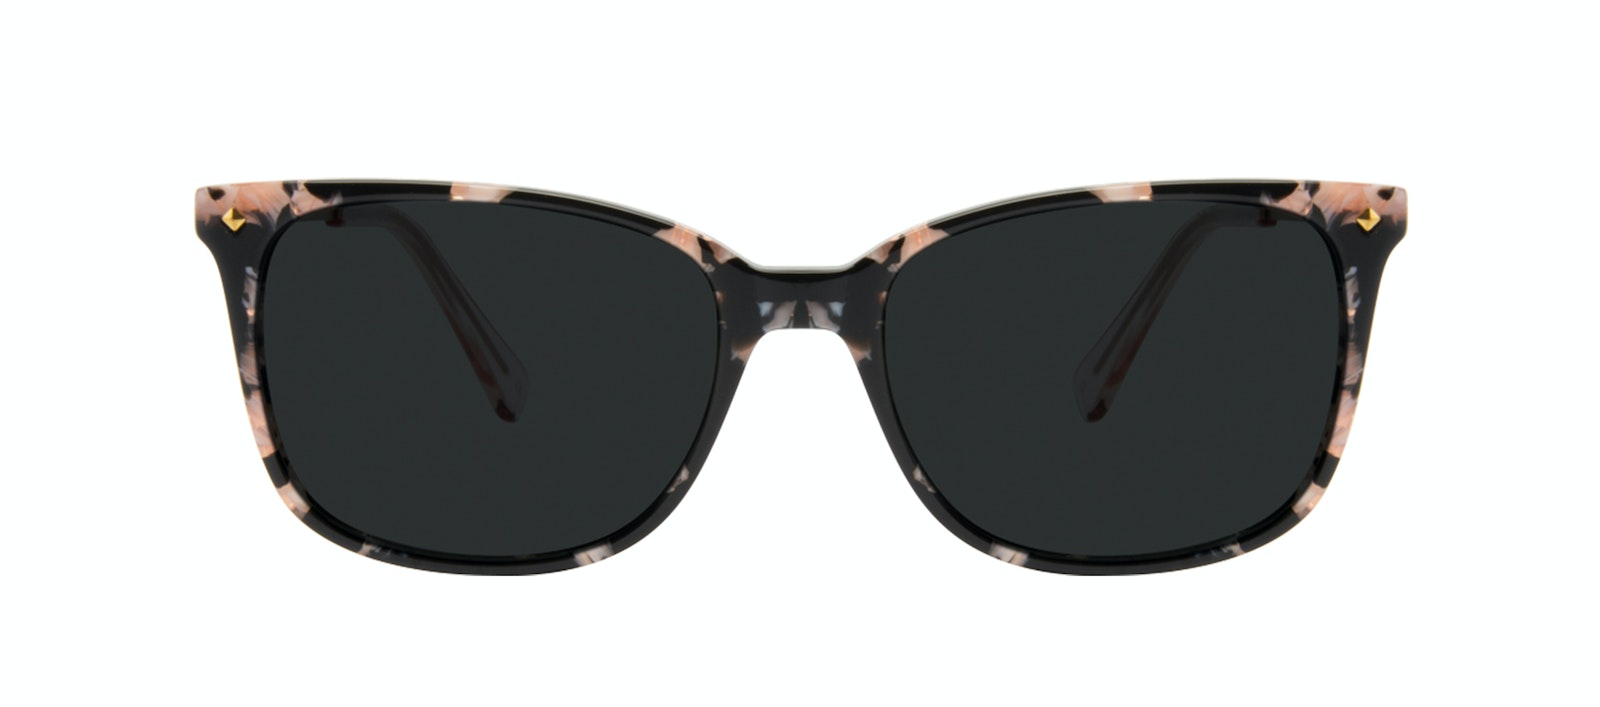 Affordable Fashion Glasses Rectangle Square Sunglasses Women Refine Licorice Front